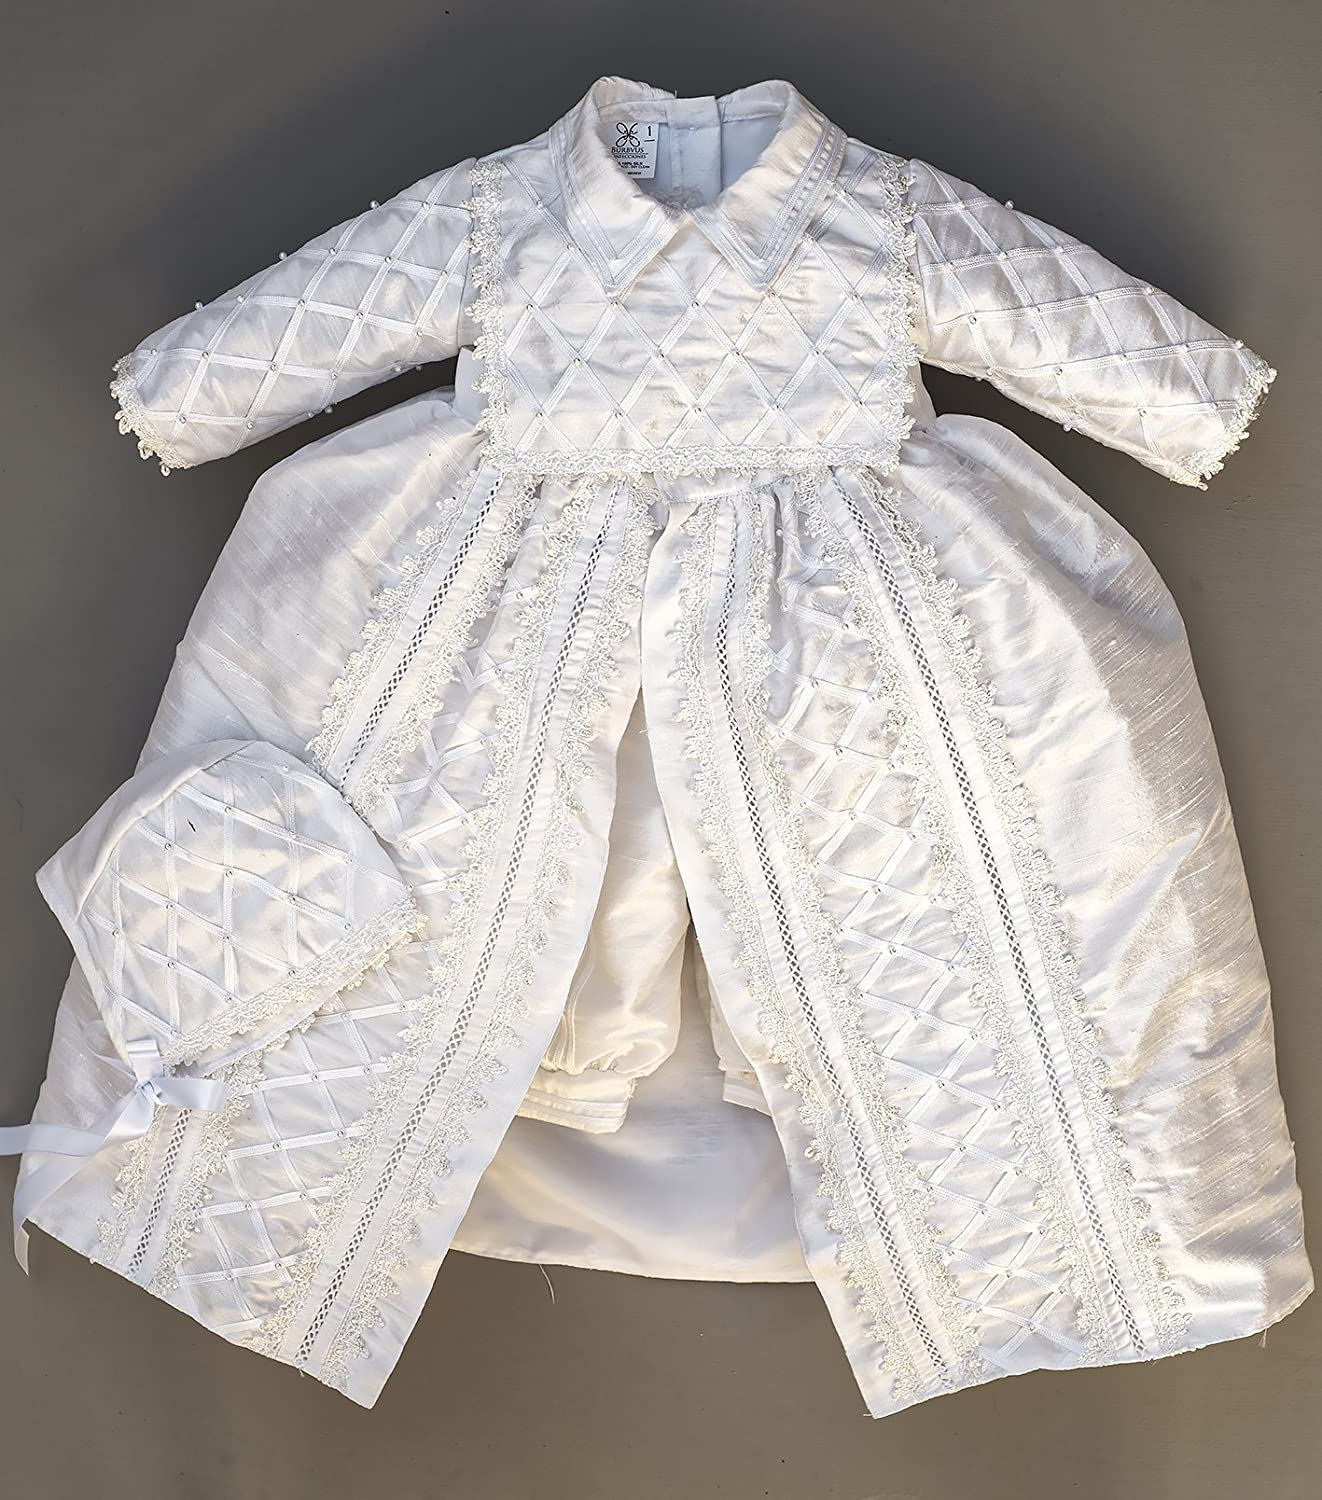 17e752d66c8a5e Amazon.com: Baby Boy Christening Gown, Spanish Style outfit (ropones para  bautizo). Baptism Outfit B001: Handmade